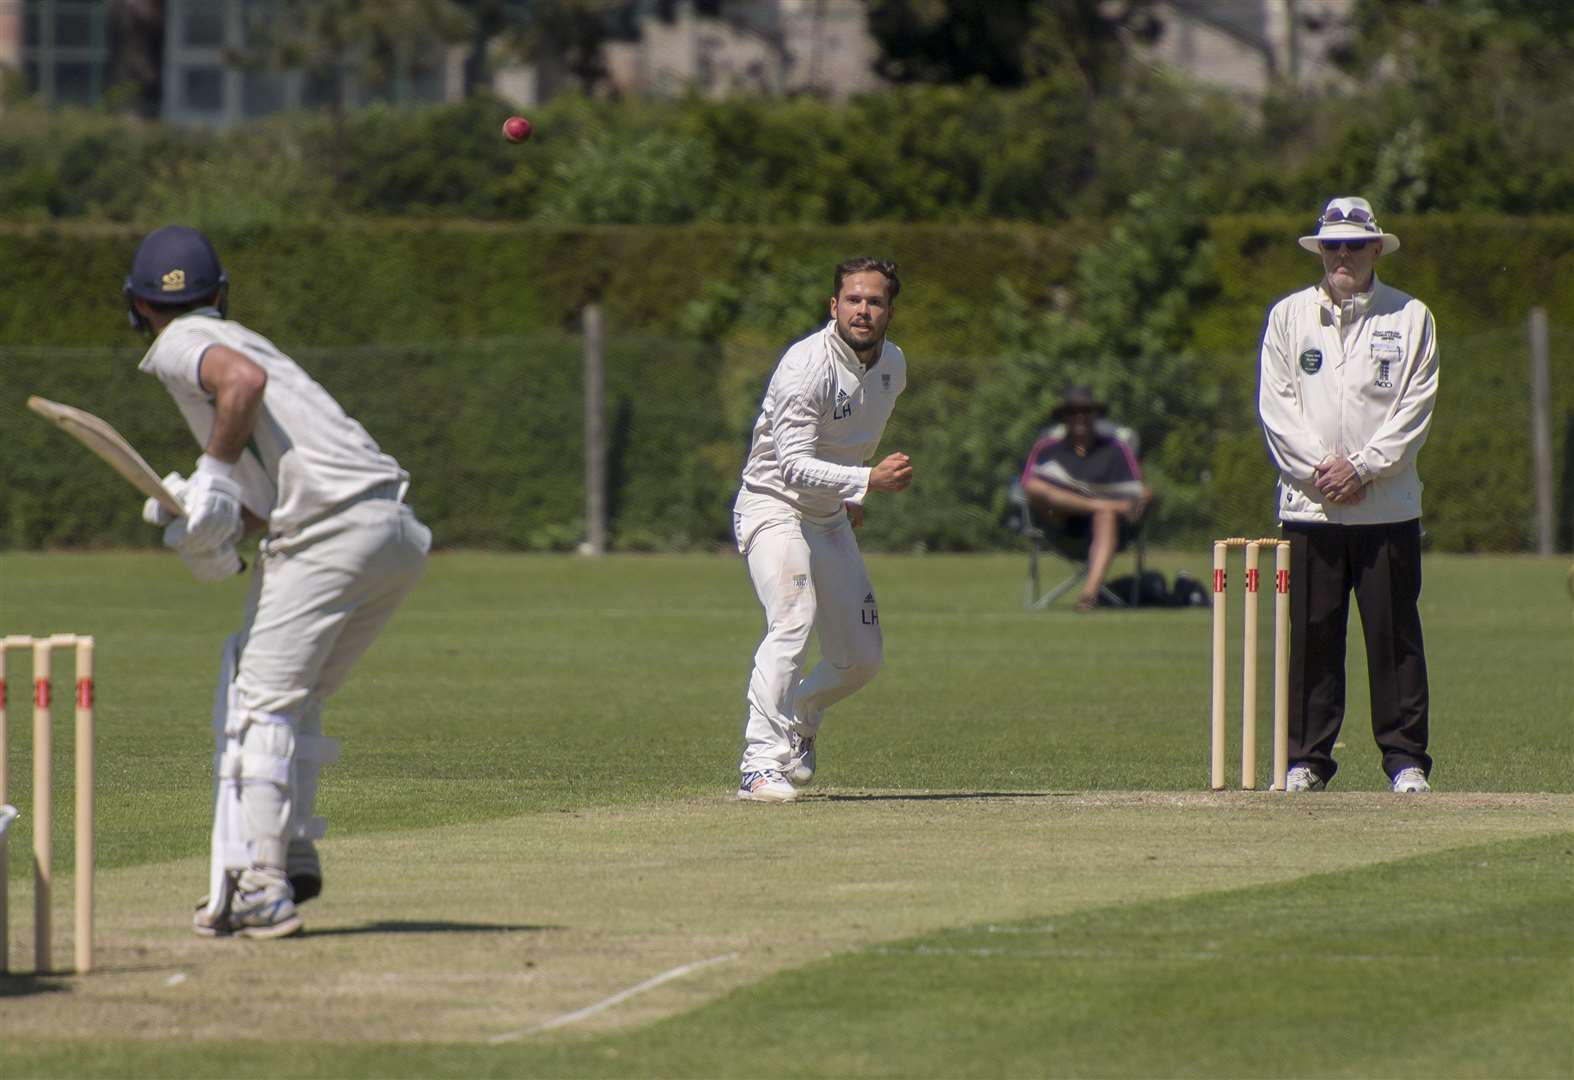 Cambridge Cricket Club strengthen for new East Anglian Premier League season with arrival of Peter Younghusband